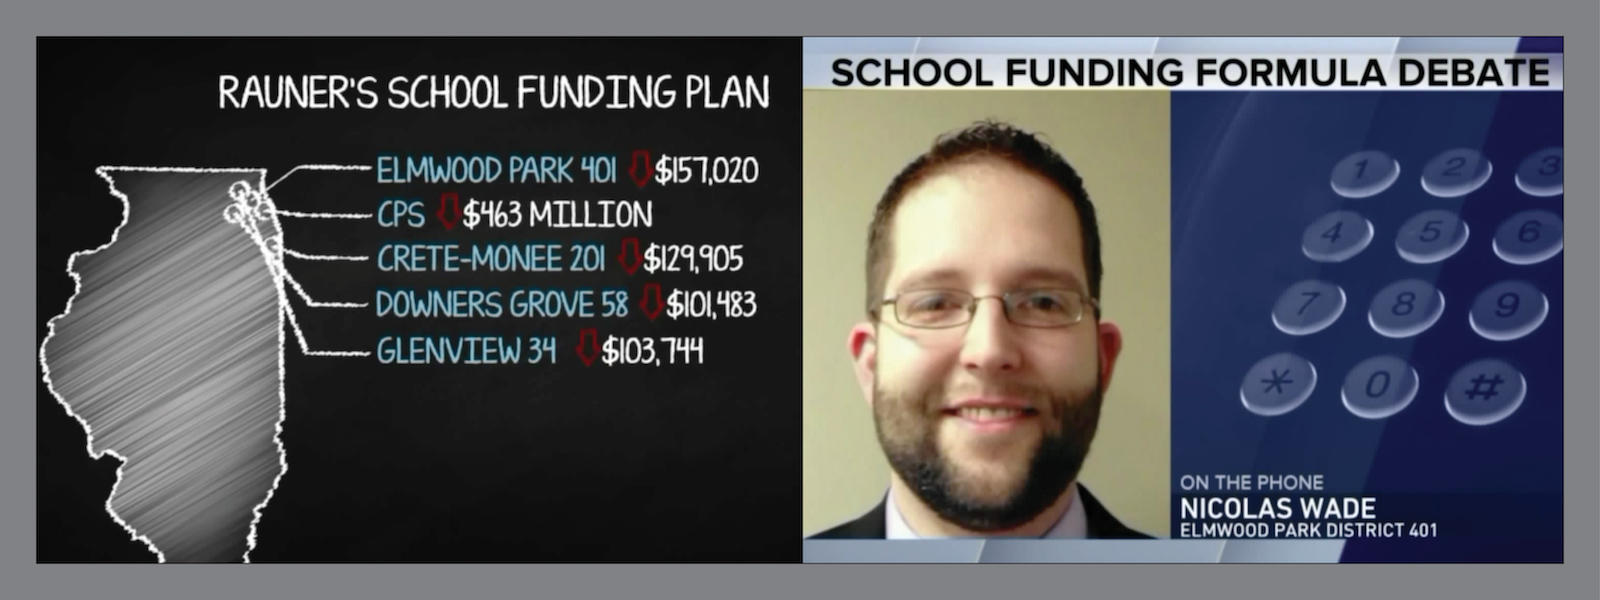 DR. WADE ON SCHOOL FUNDING